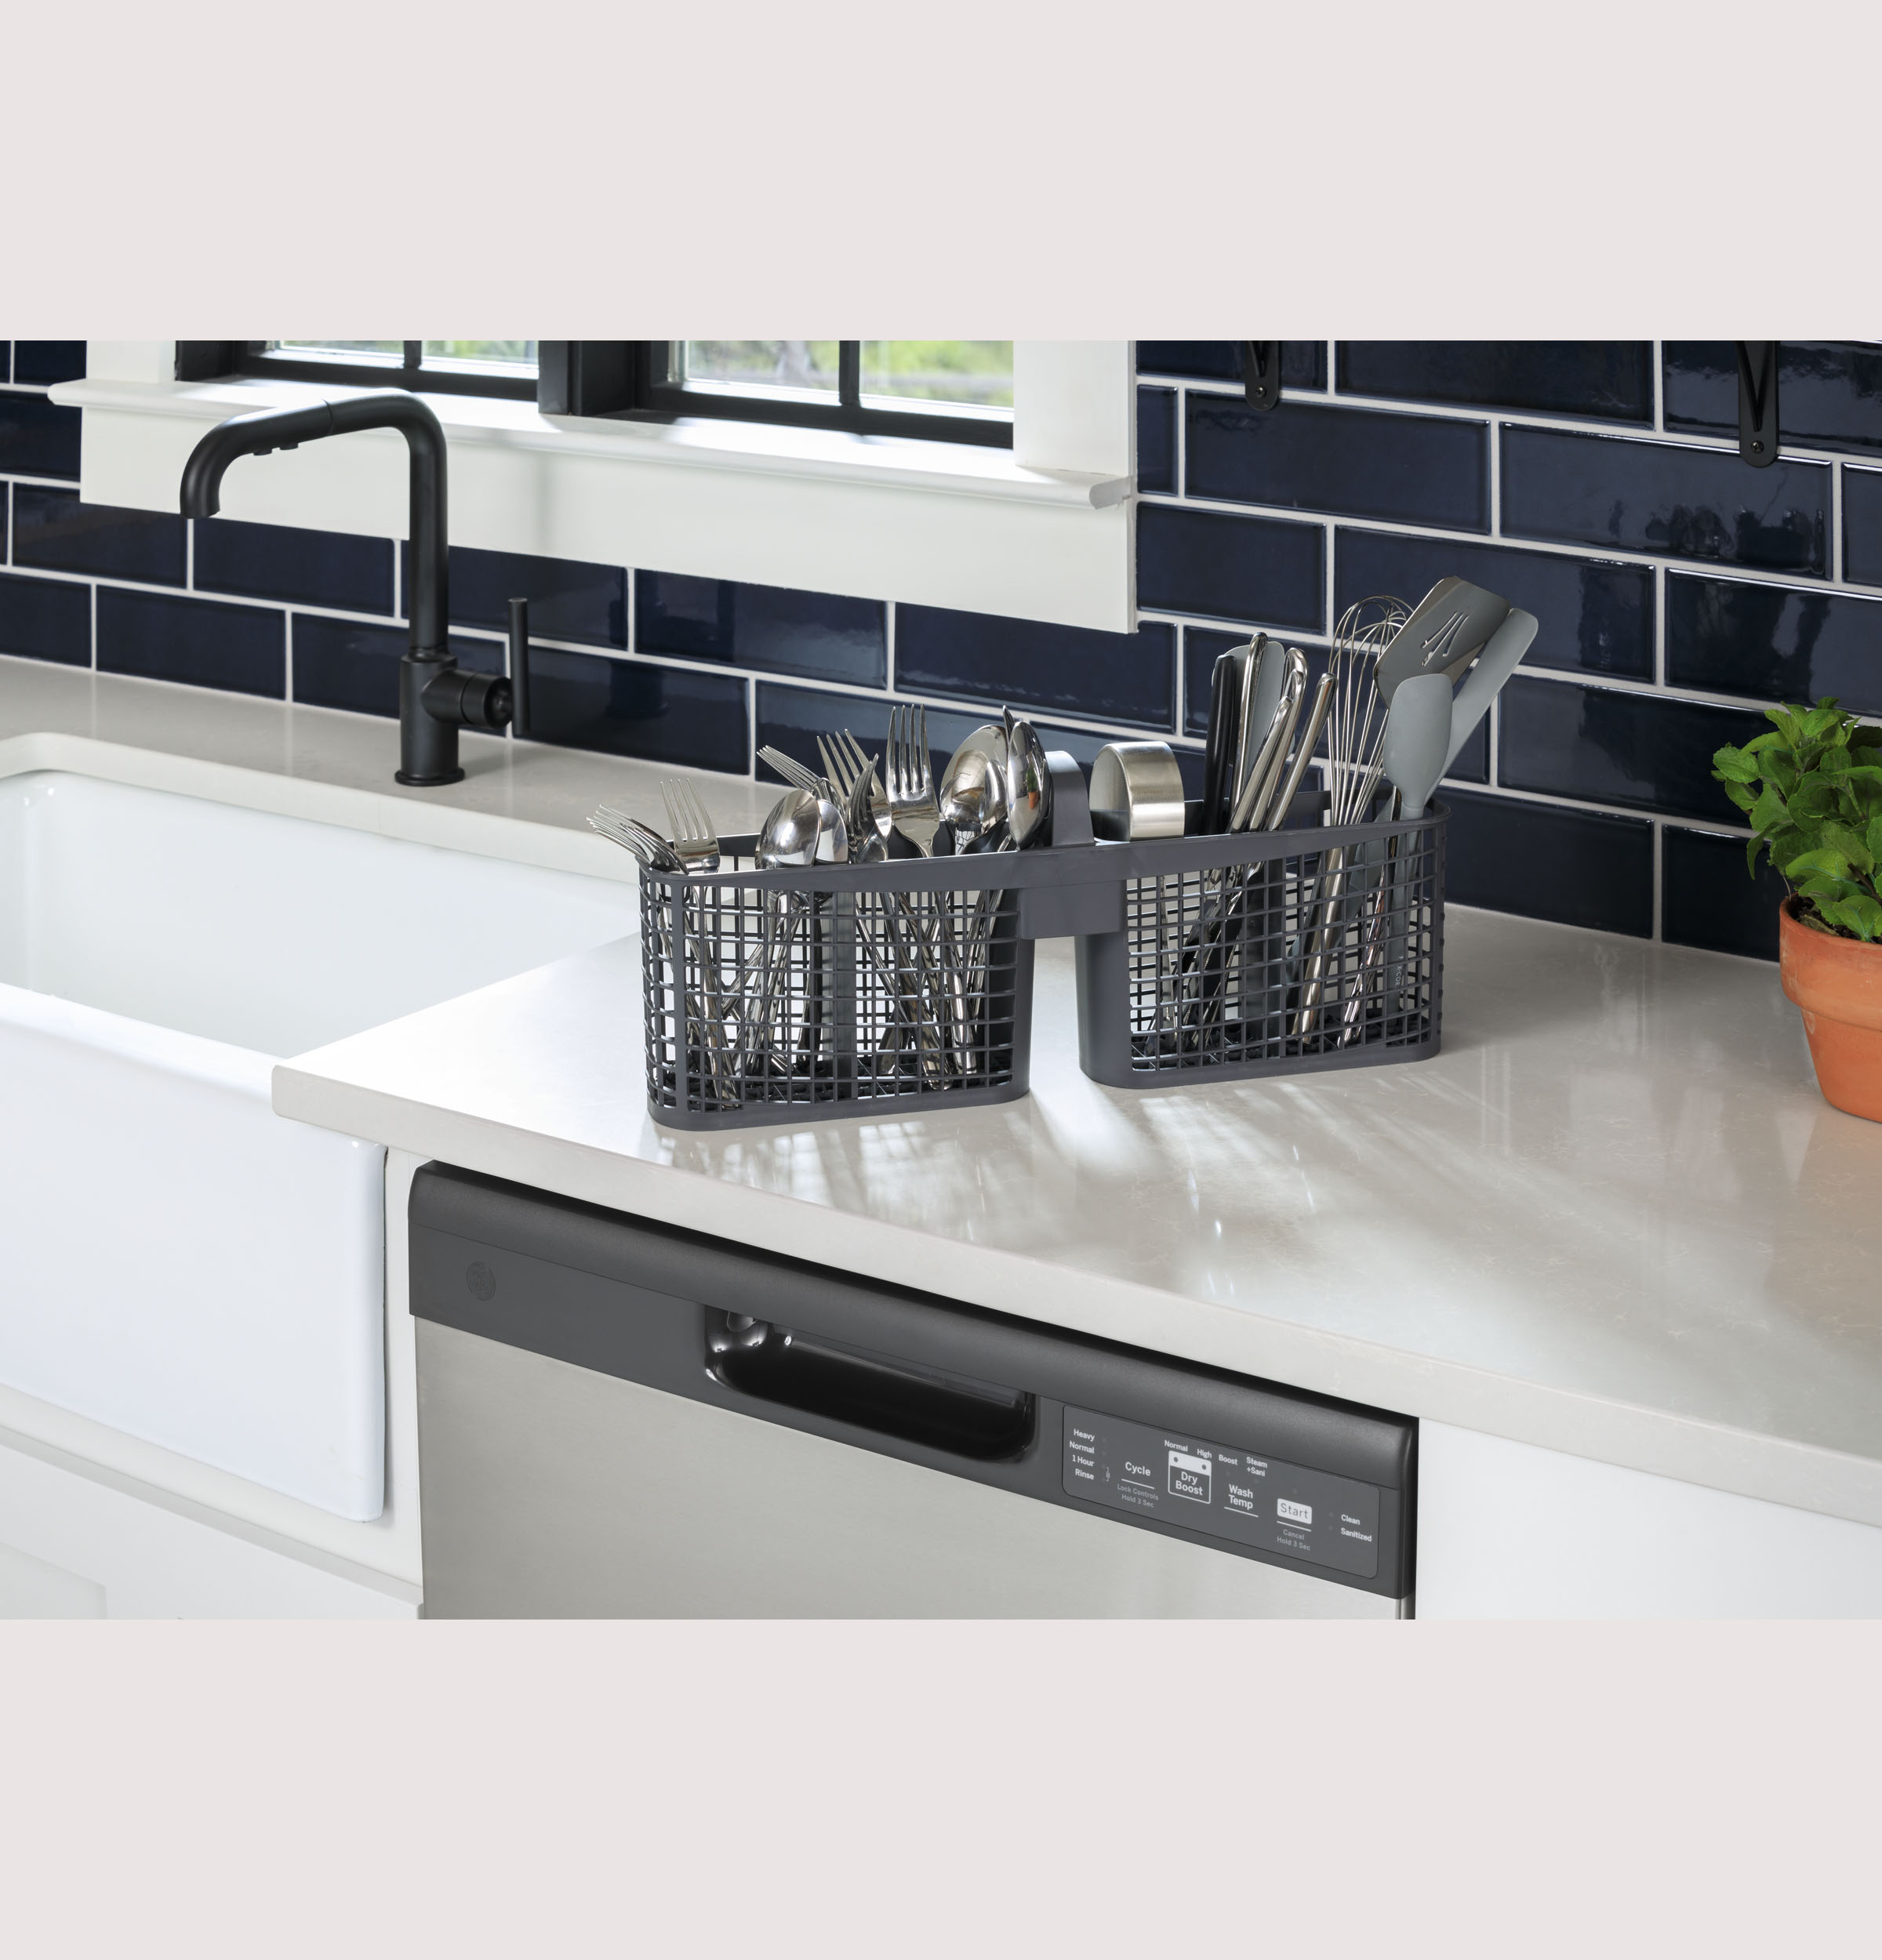 Model: GDF535PGRCC | GE GE® Dishwasher with Front Controls